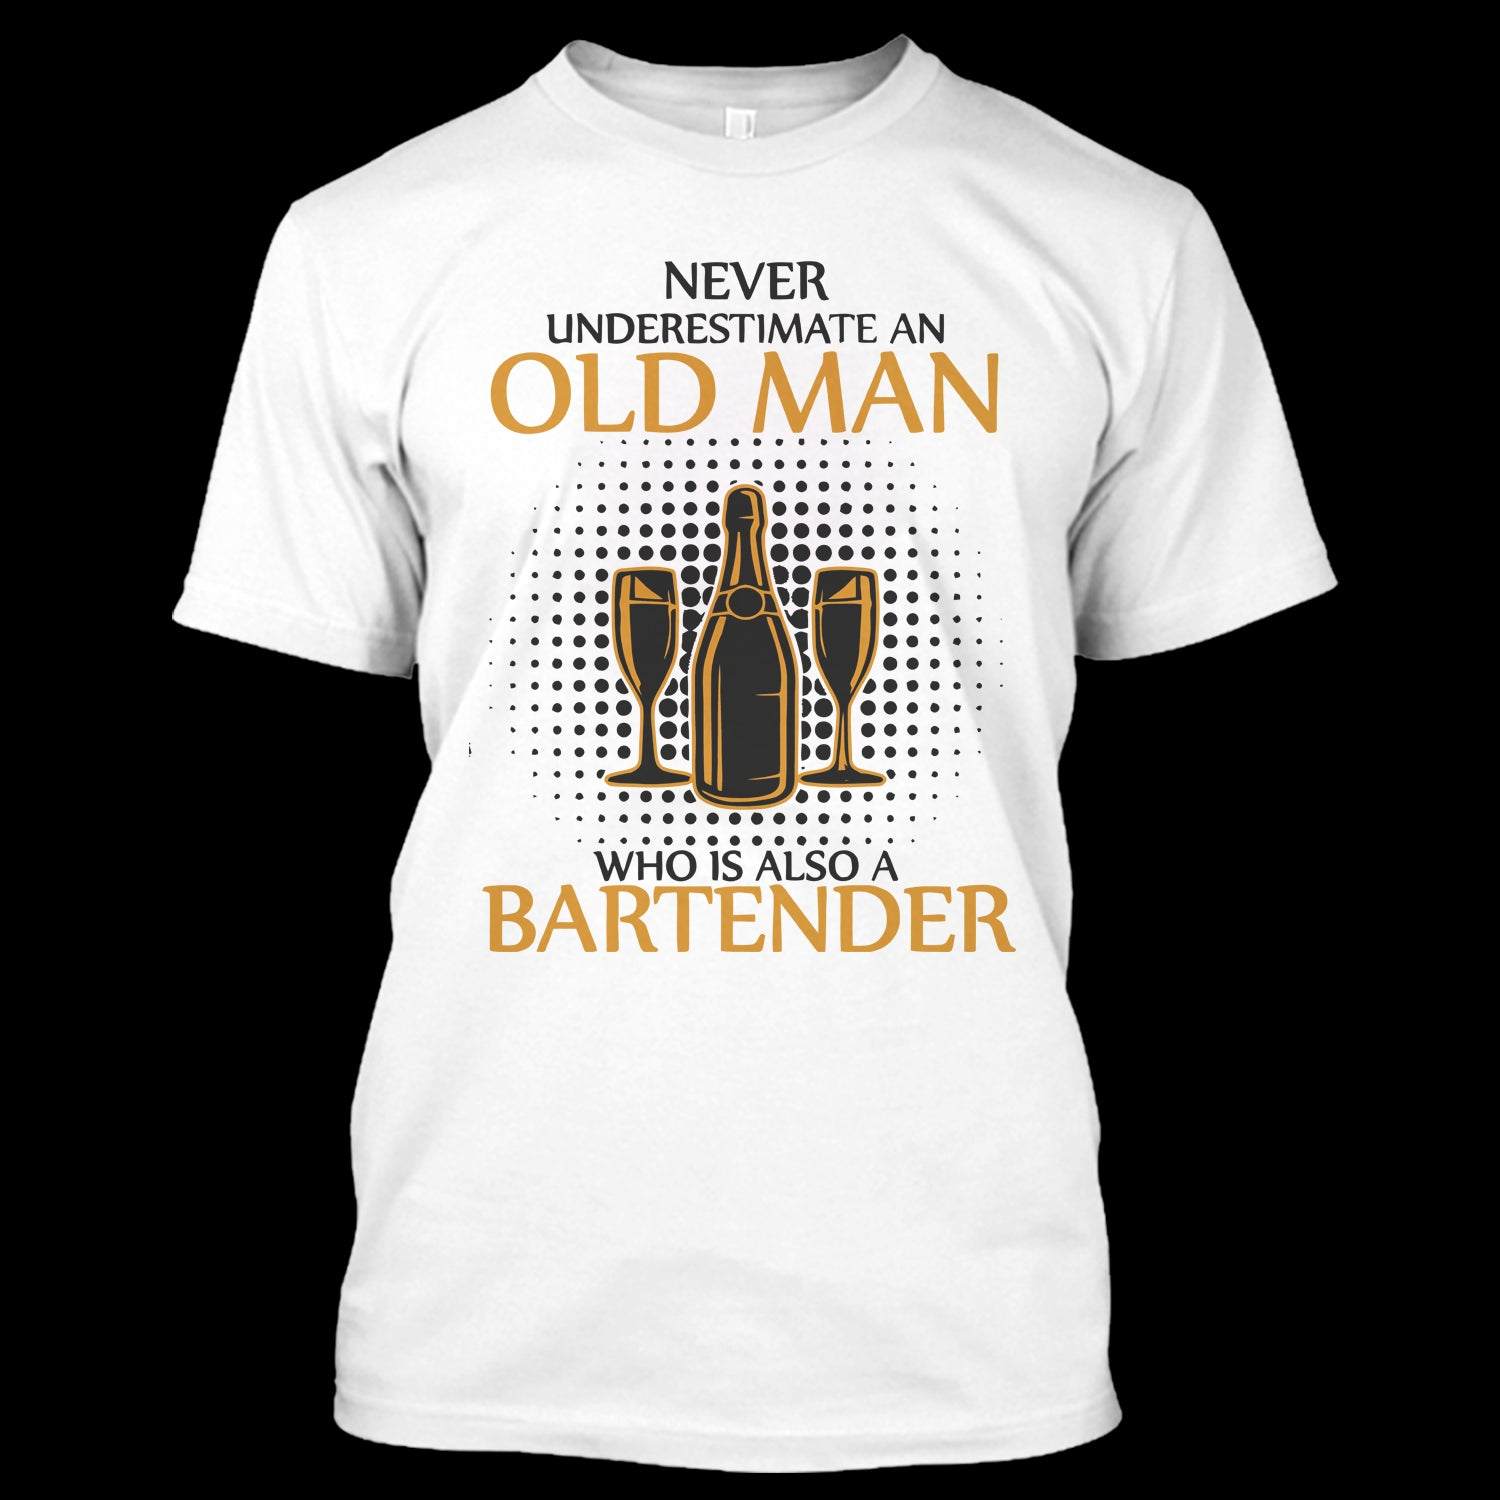 e2f85d18 An Old Man Also A Bartender T Shirt, Bartender Shirt, Jobs Shirt ...